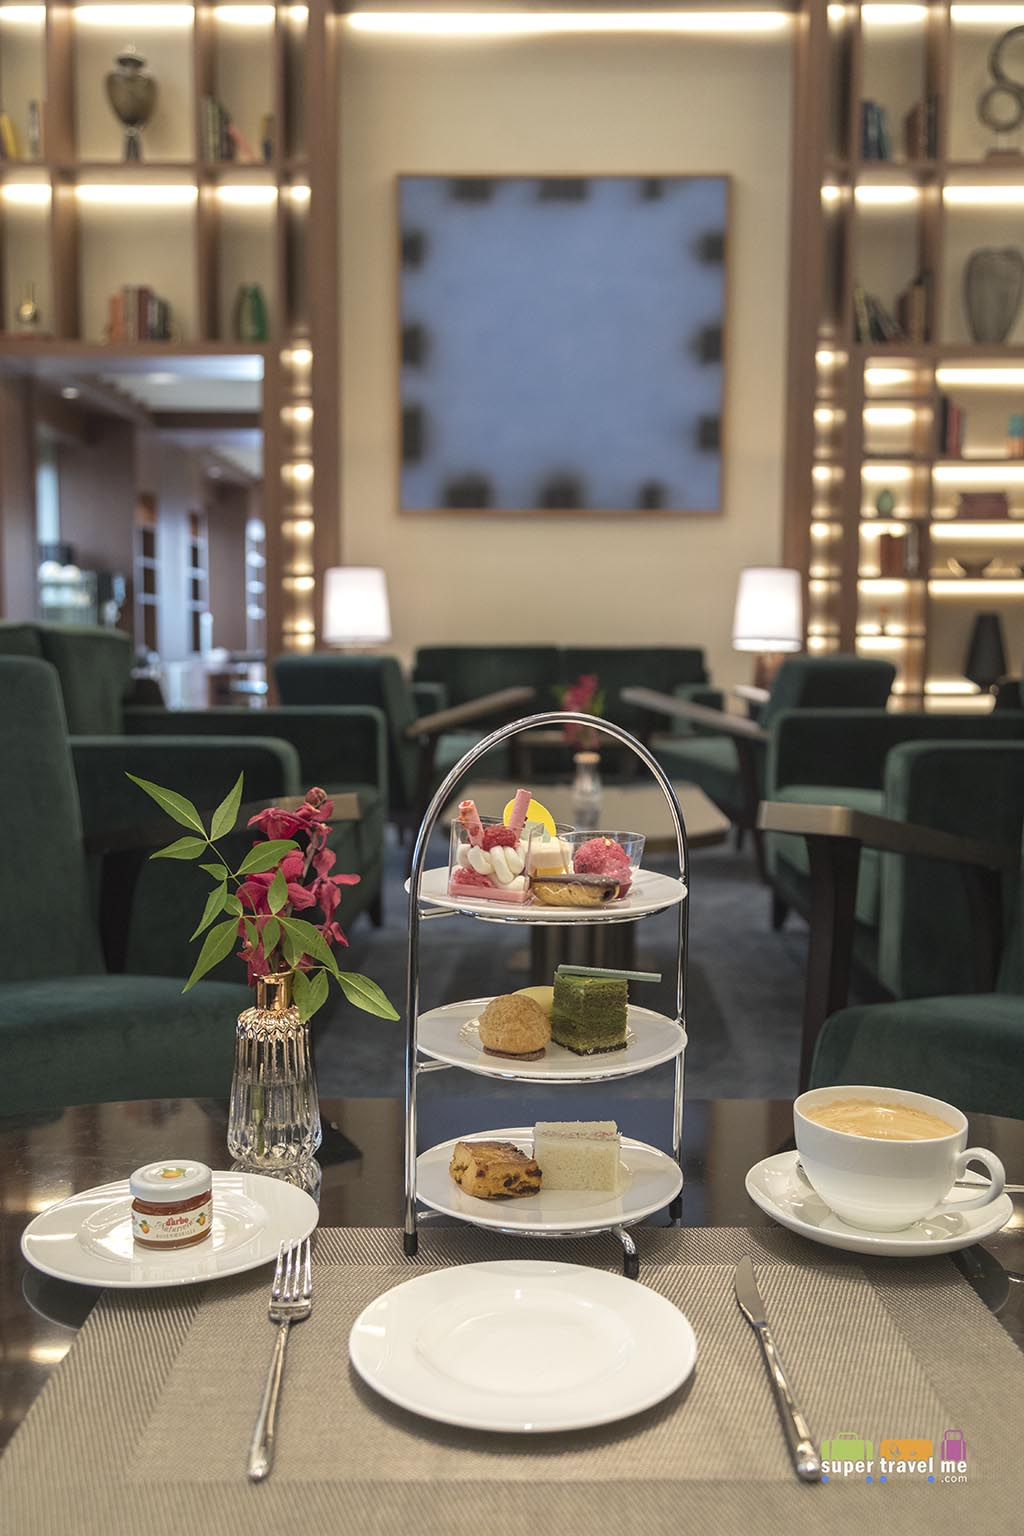 Afternoon Tea set at Club Lounge 1G7A1882